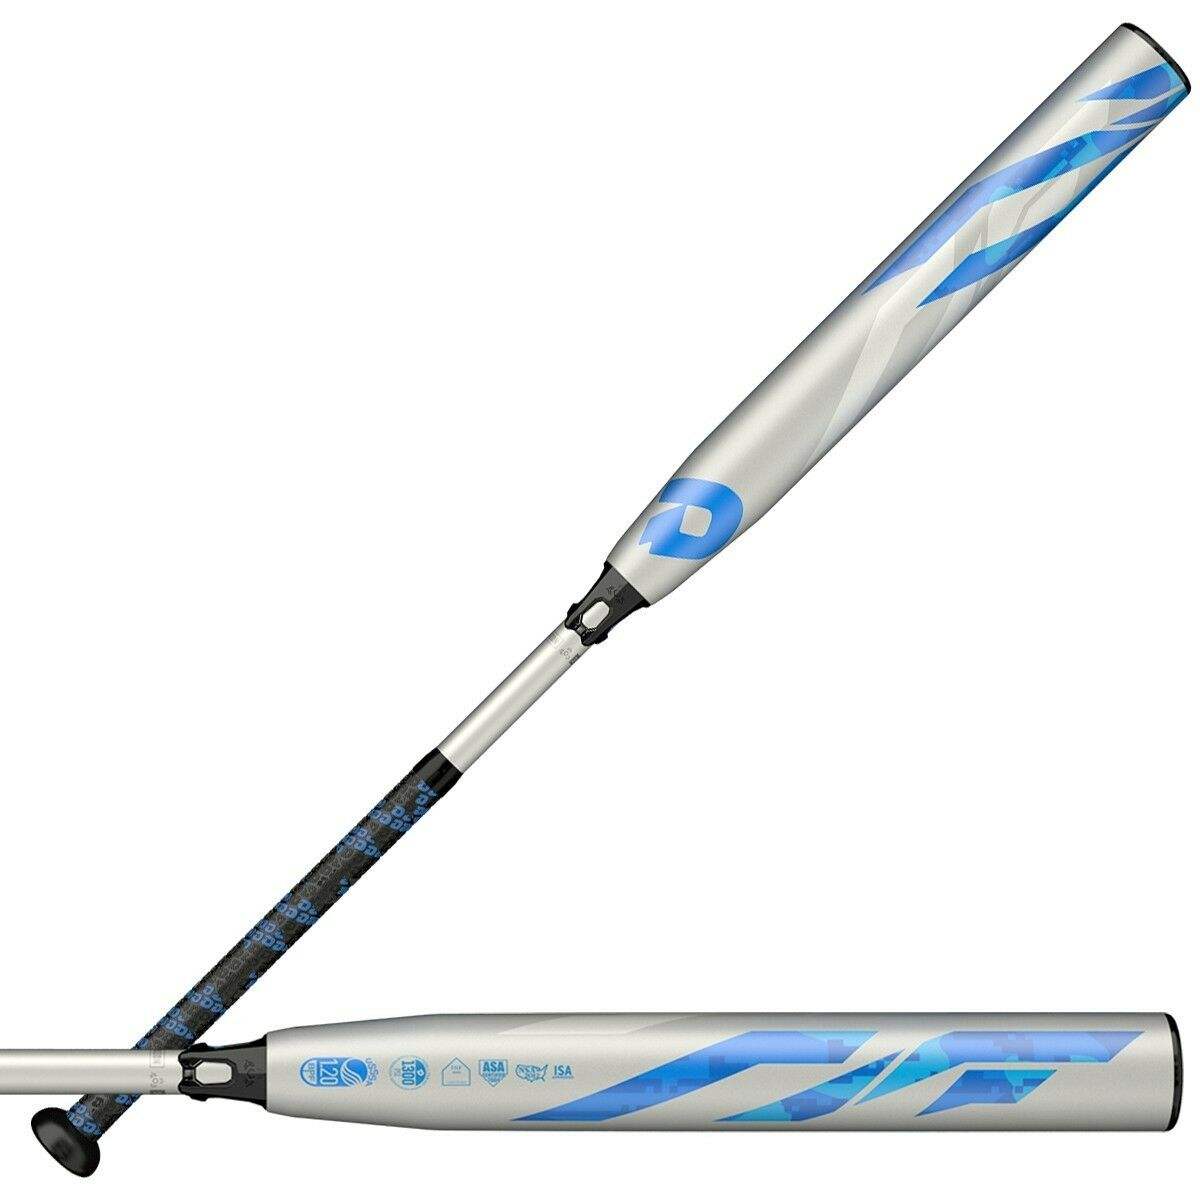 2019 DeMarini Zen Fastpitch Softball Composite Softball Bat 28/17 -11 WTDXCFS-19